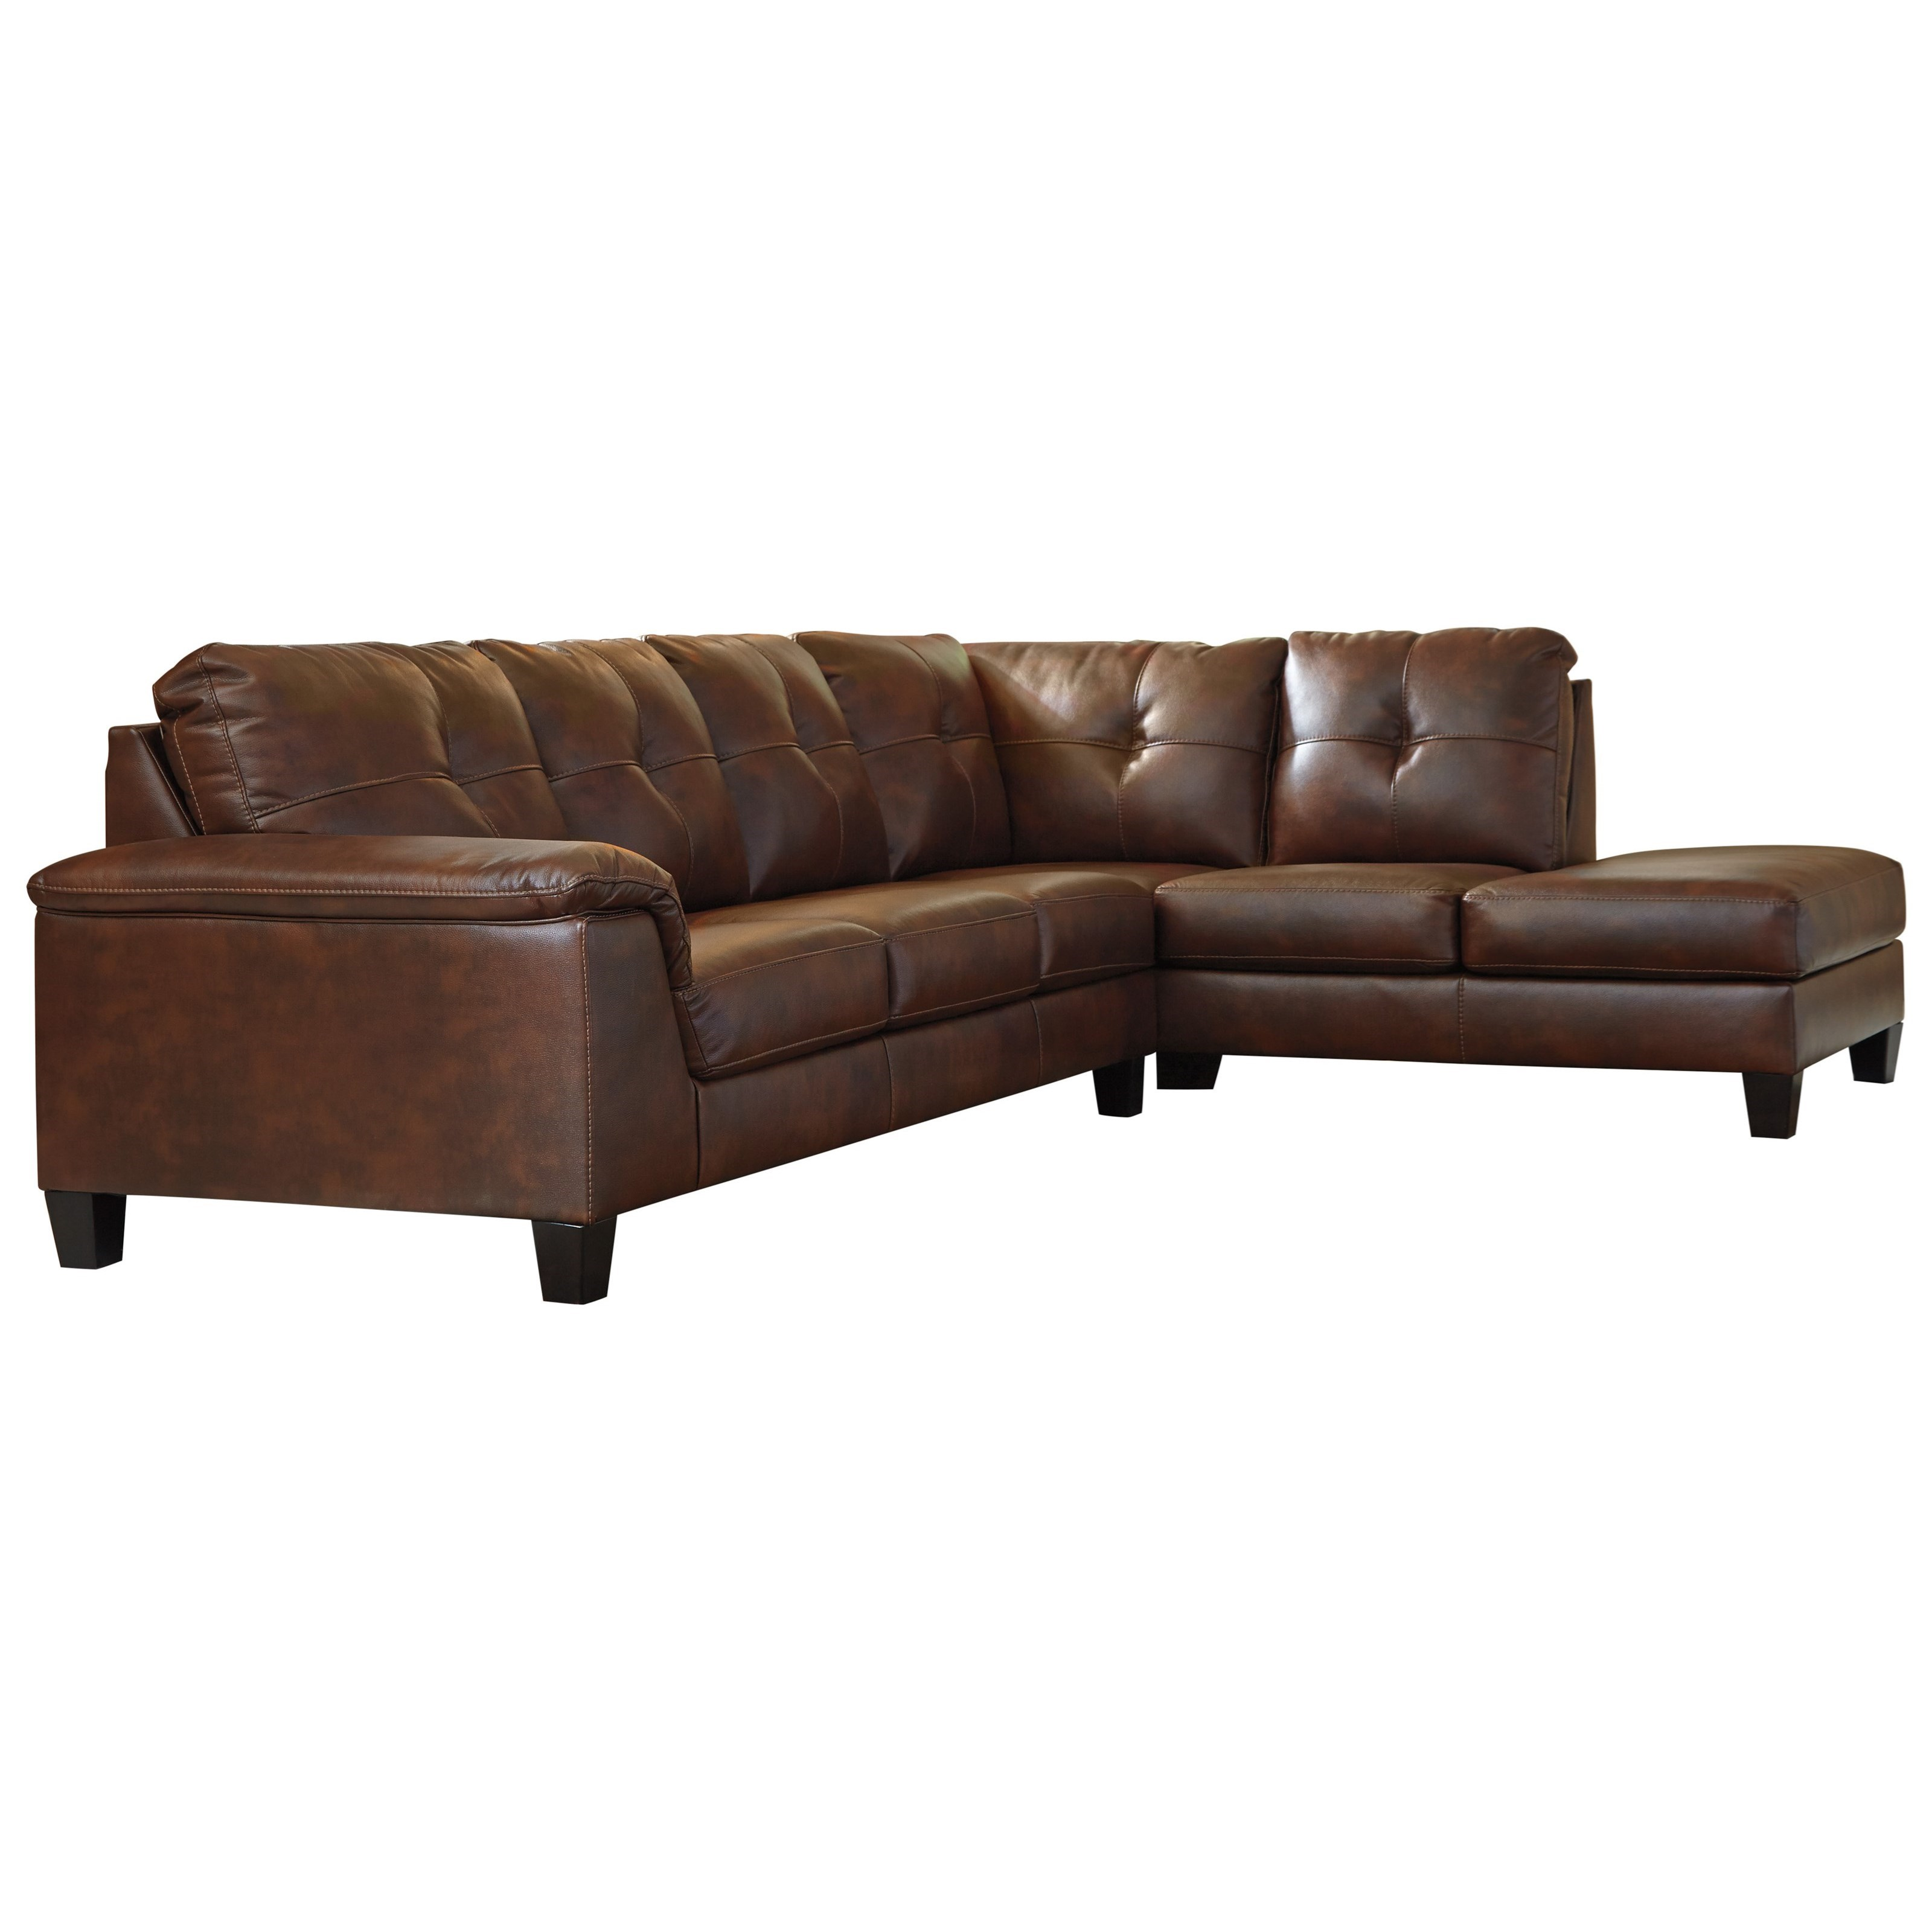 chaise sofas perth warehouse direct bayswater danish modern convertible sofa signature design by ashley goldstone 2 piece sectional